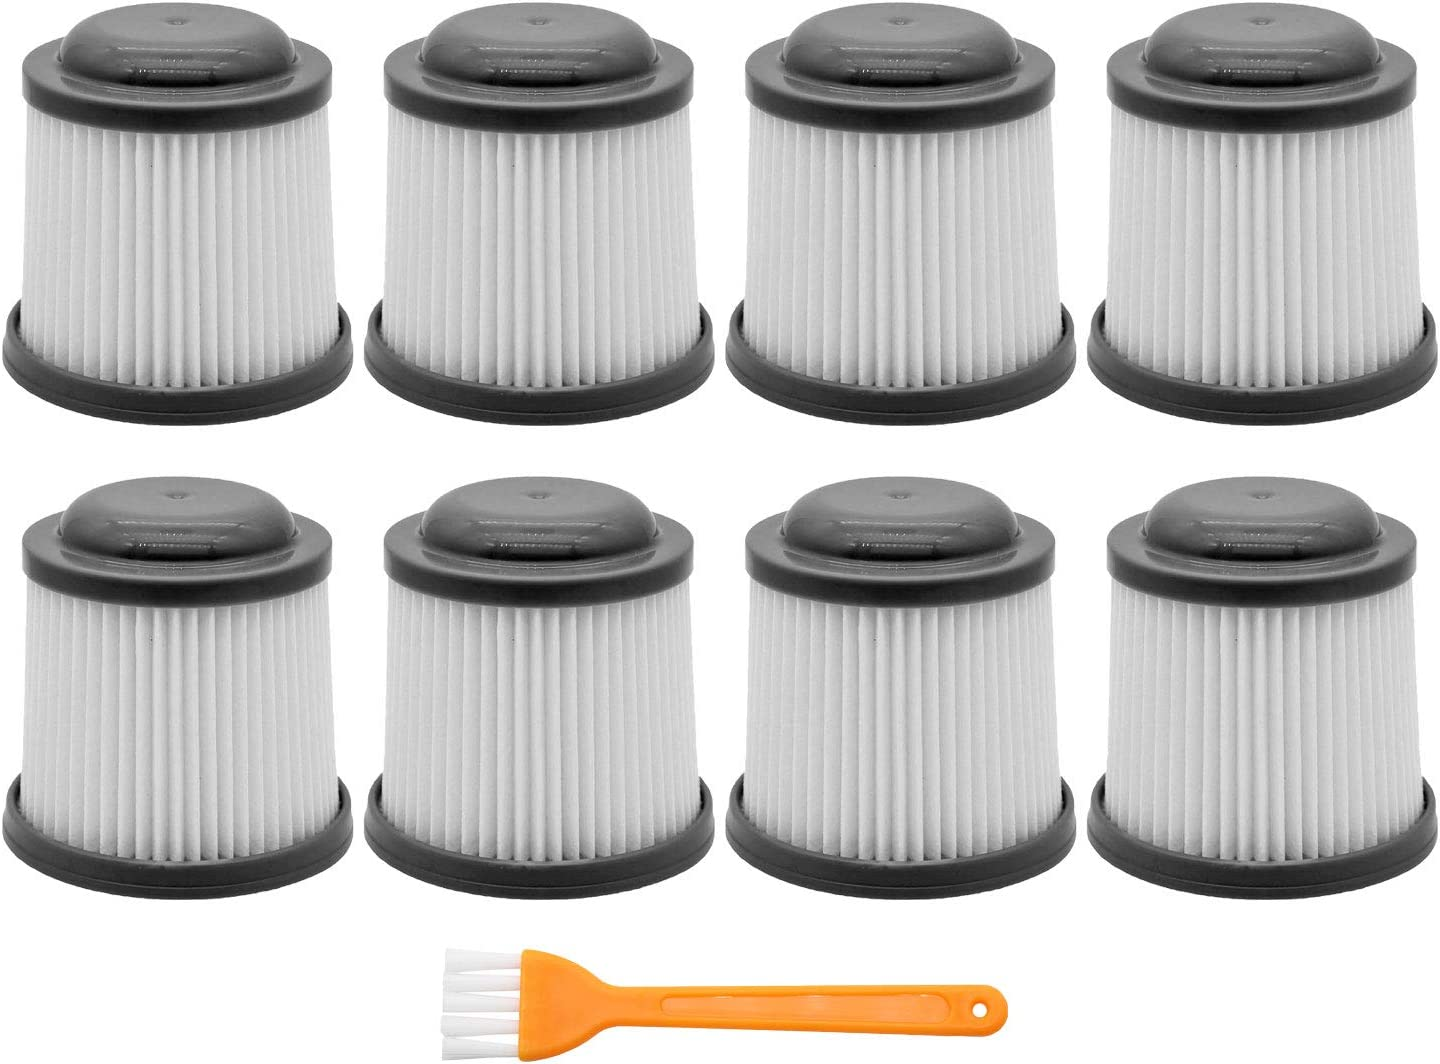 IOYIJOI 8 Pack Vac Replacement Filters for Black & Decker PVF110 PHV1810 PHV1210 BDH2000PL BDH1600PL BDH2020FLFH BDH1620FLFH. Compare to Part # PVF110